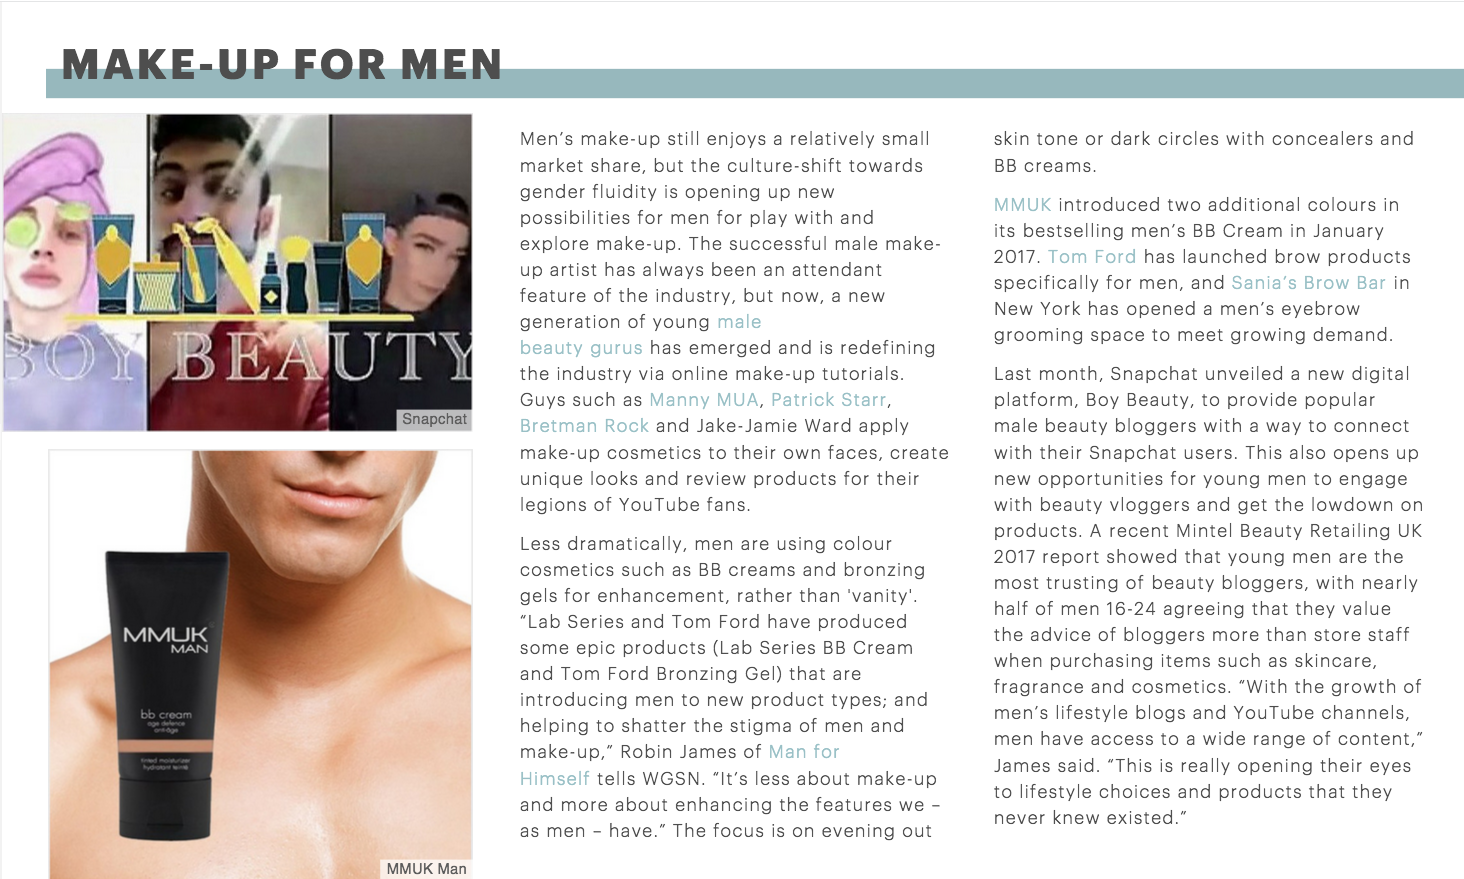 WGSN - Trend Forecasting - Male Grooming